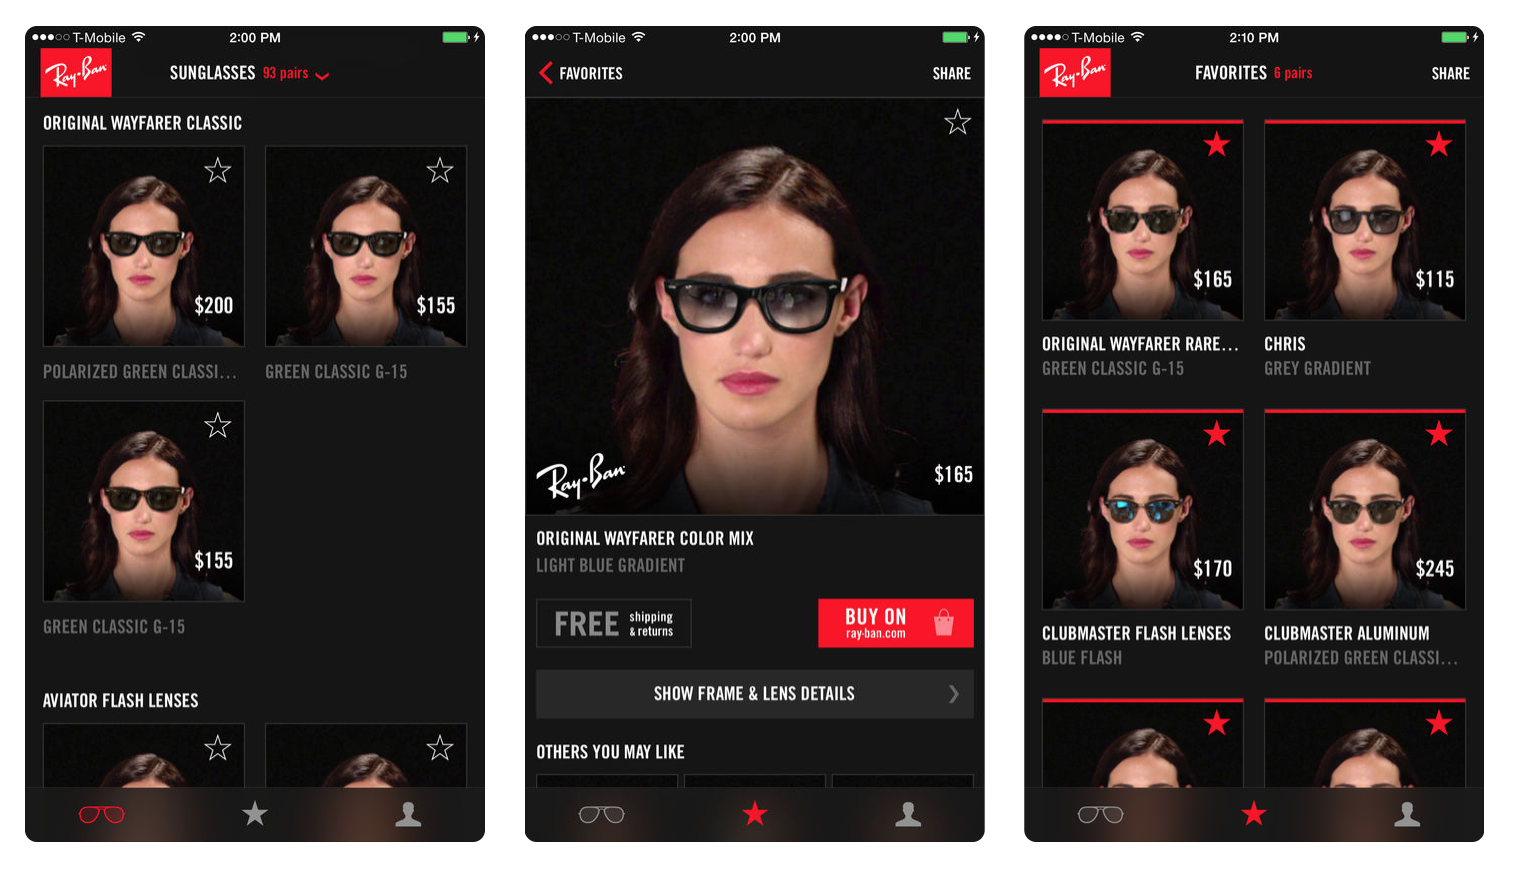 Ray ban virtual try on glasses app